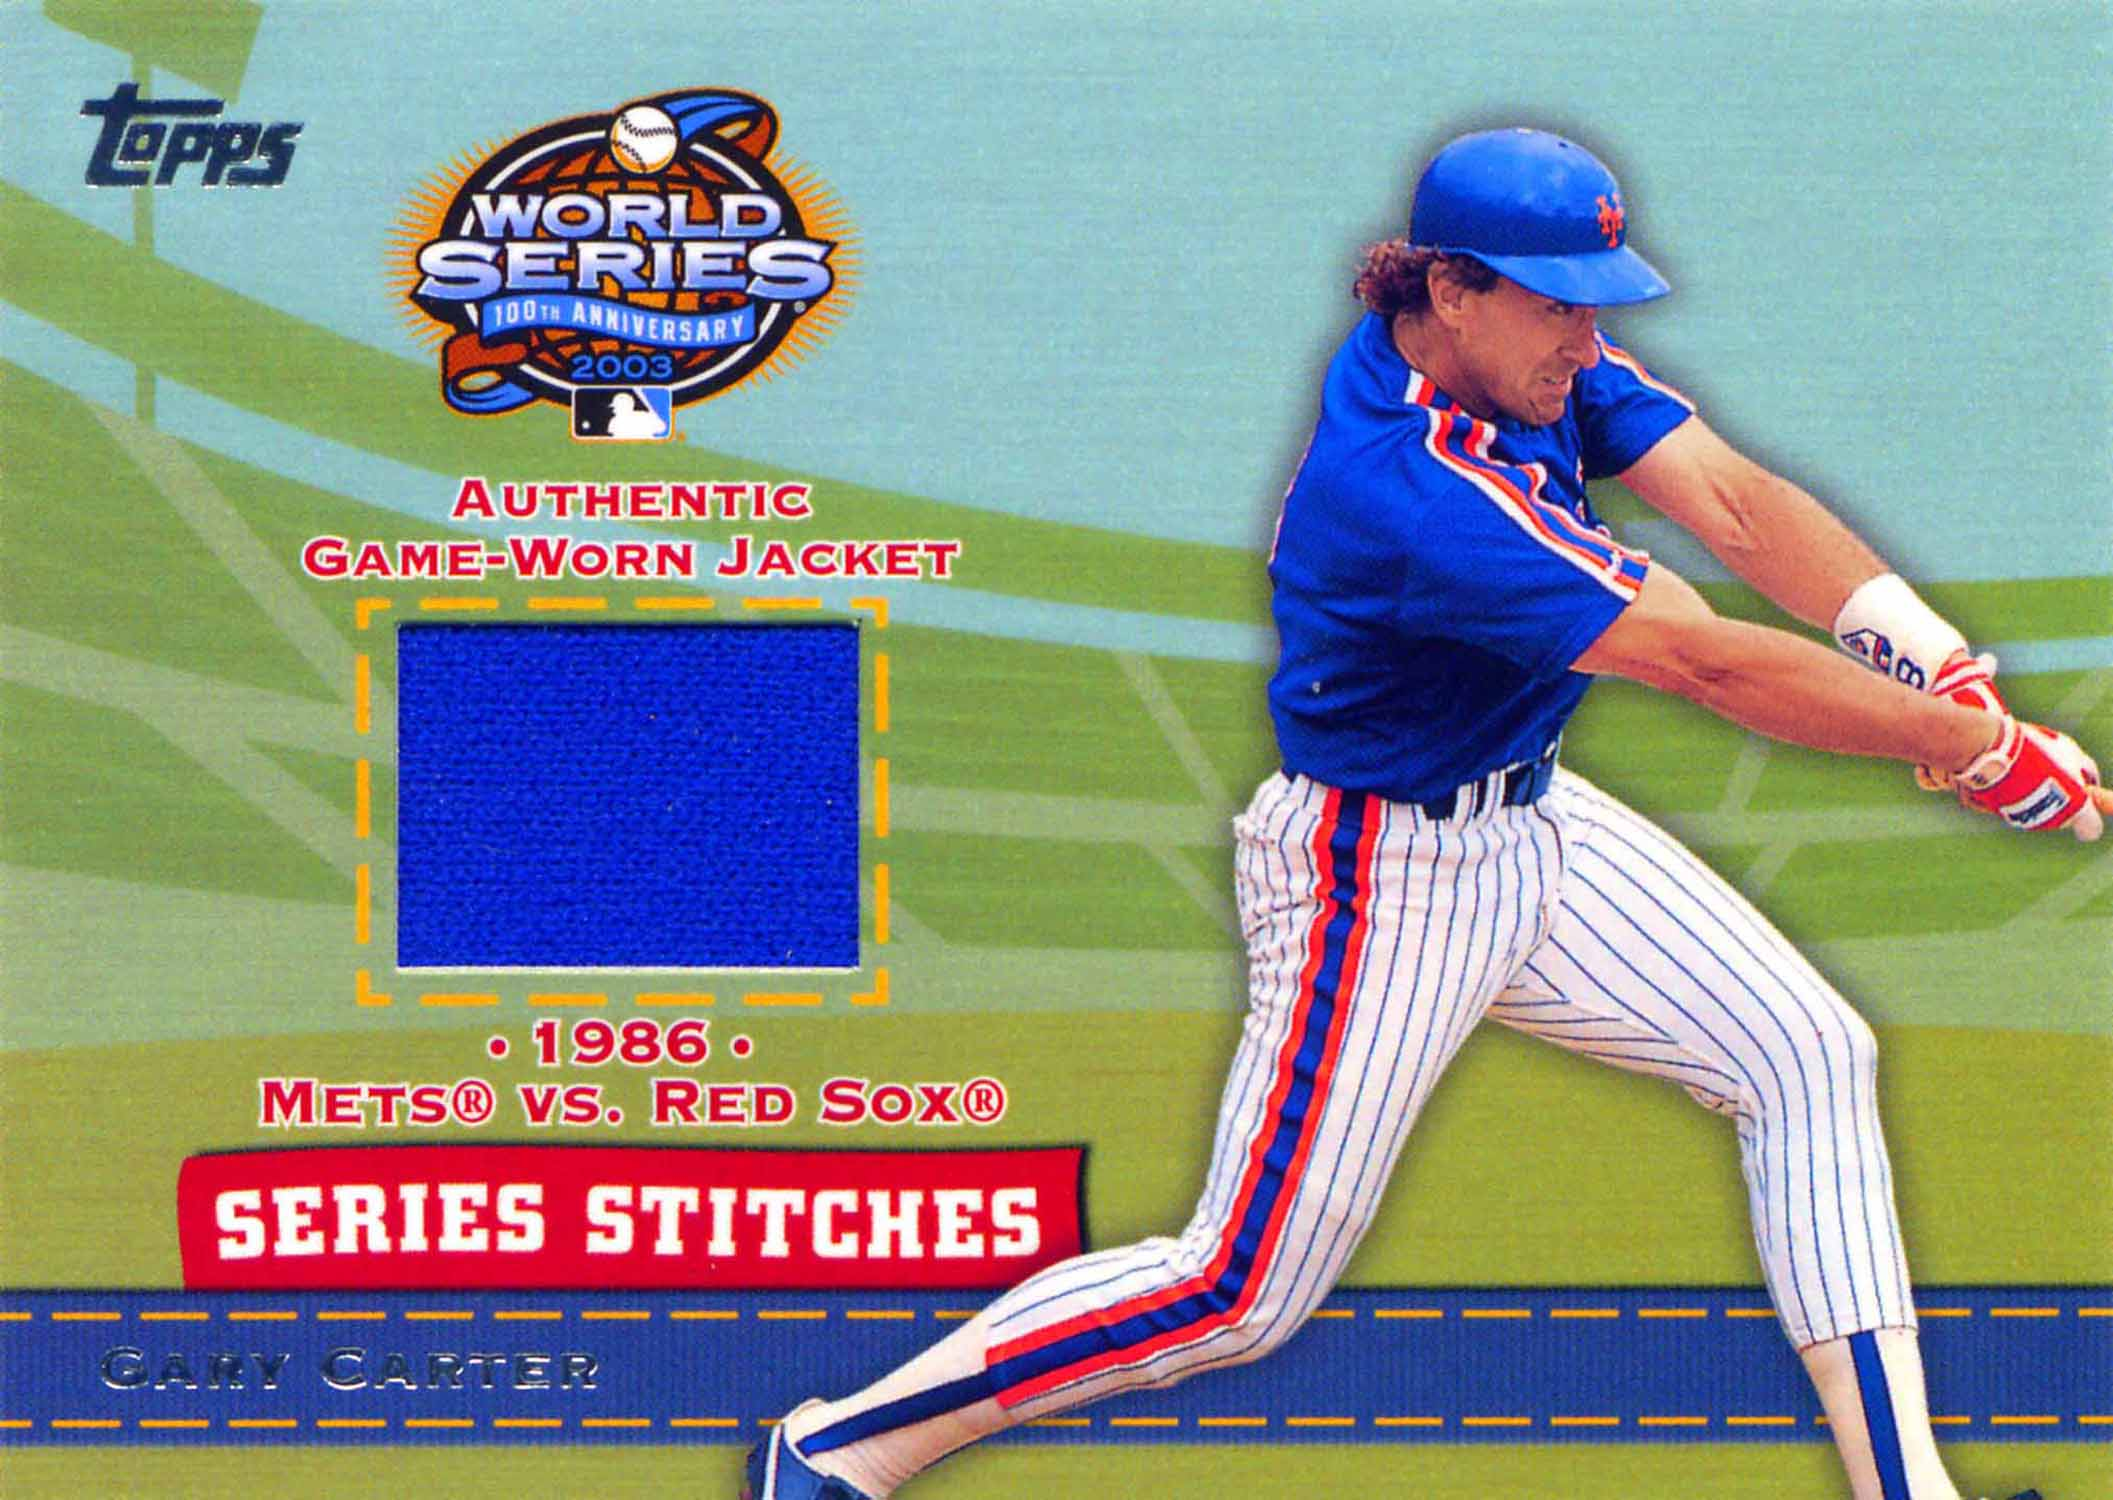 2004 Topps Series Stitches Relics Jacket